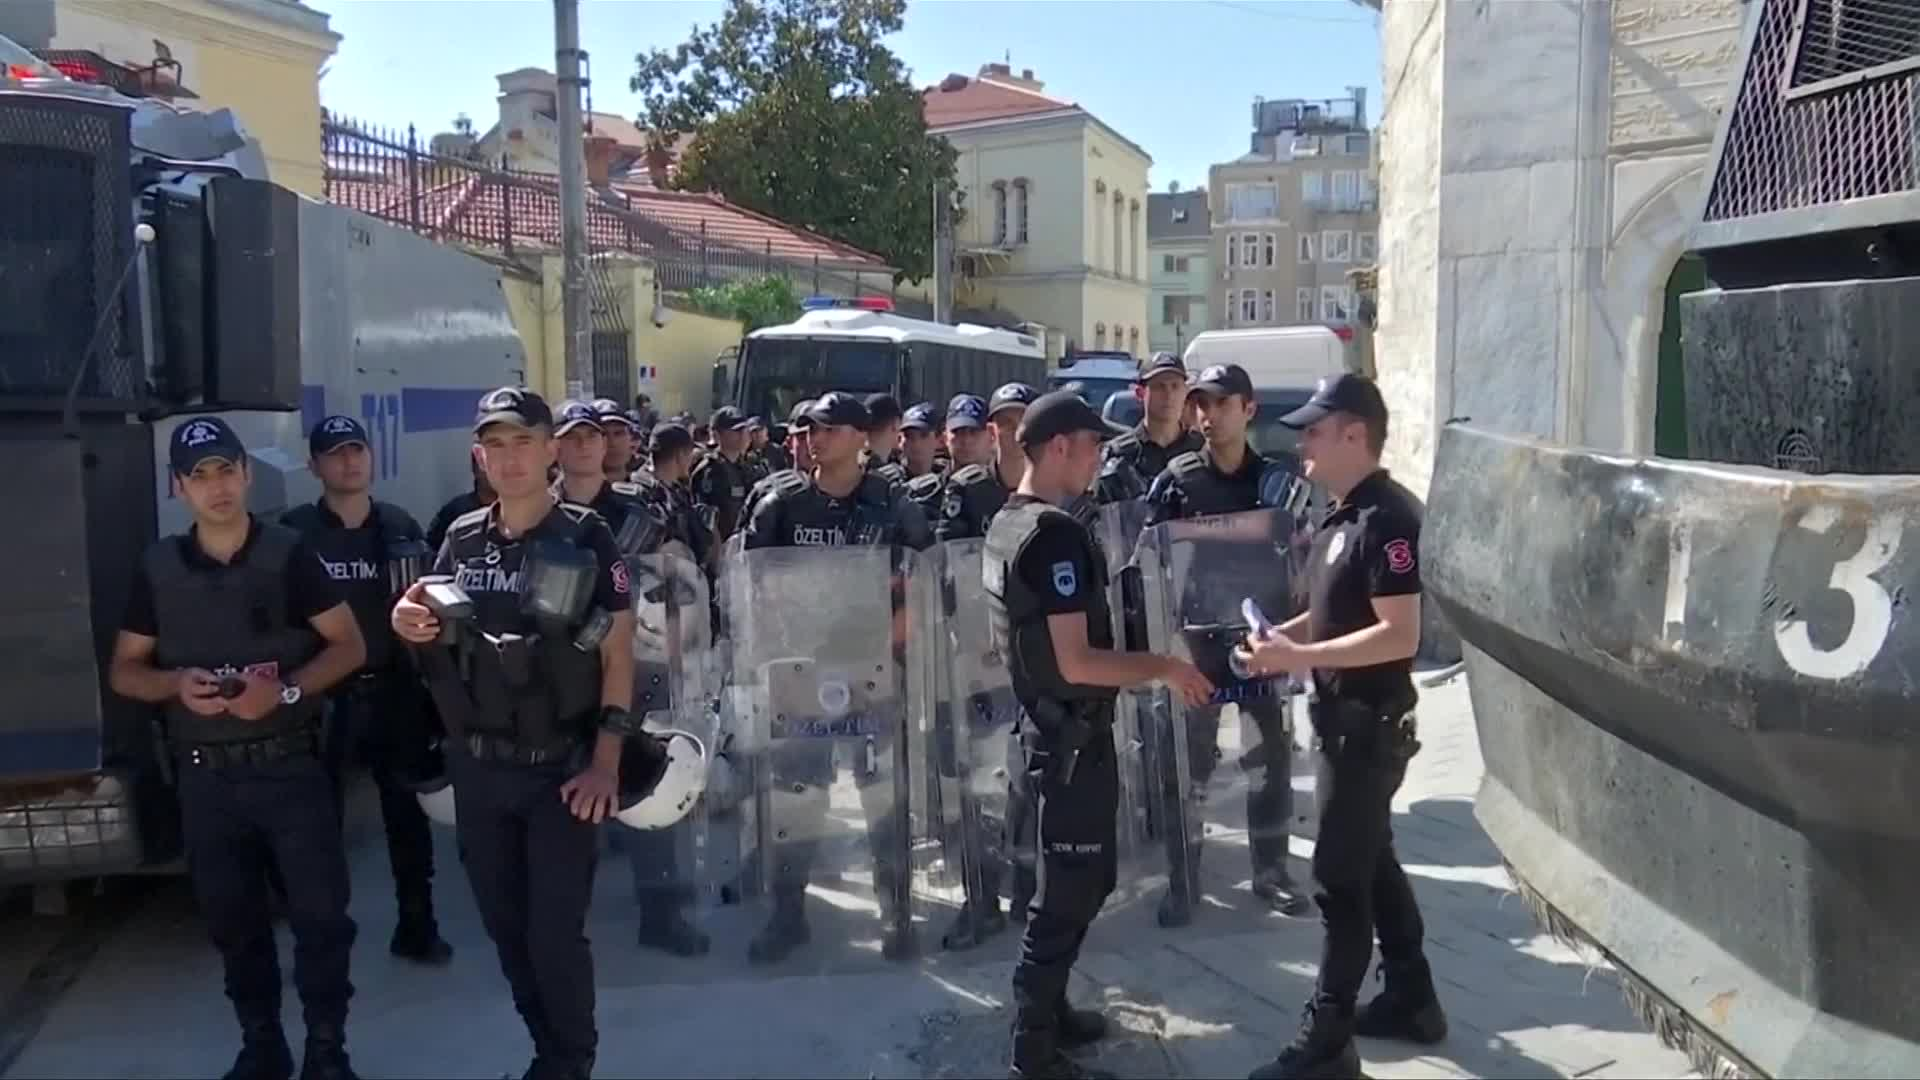 Turkish police disperse crowds at Istanbul's Gay Pride march | Current News Videos